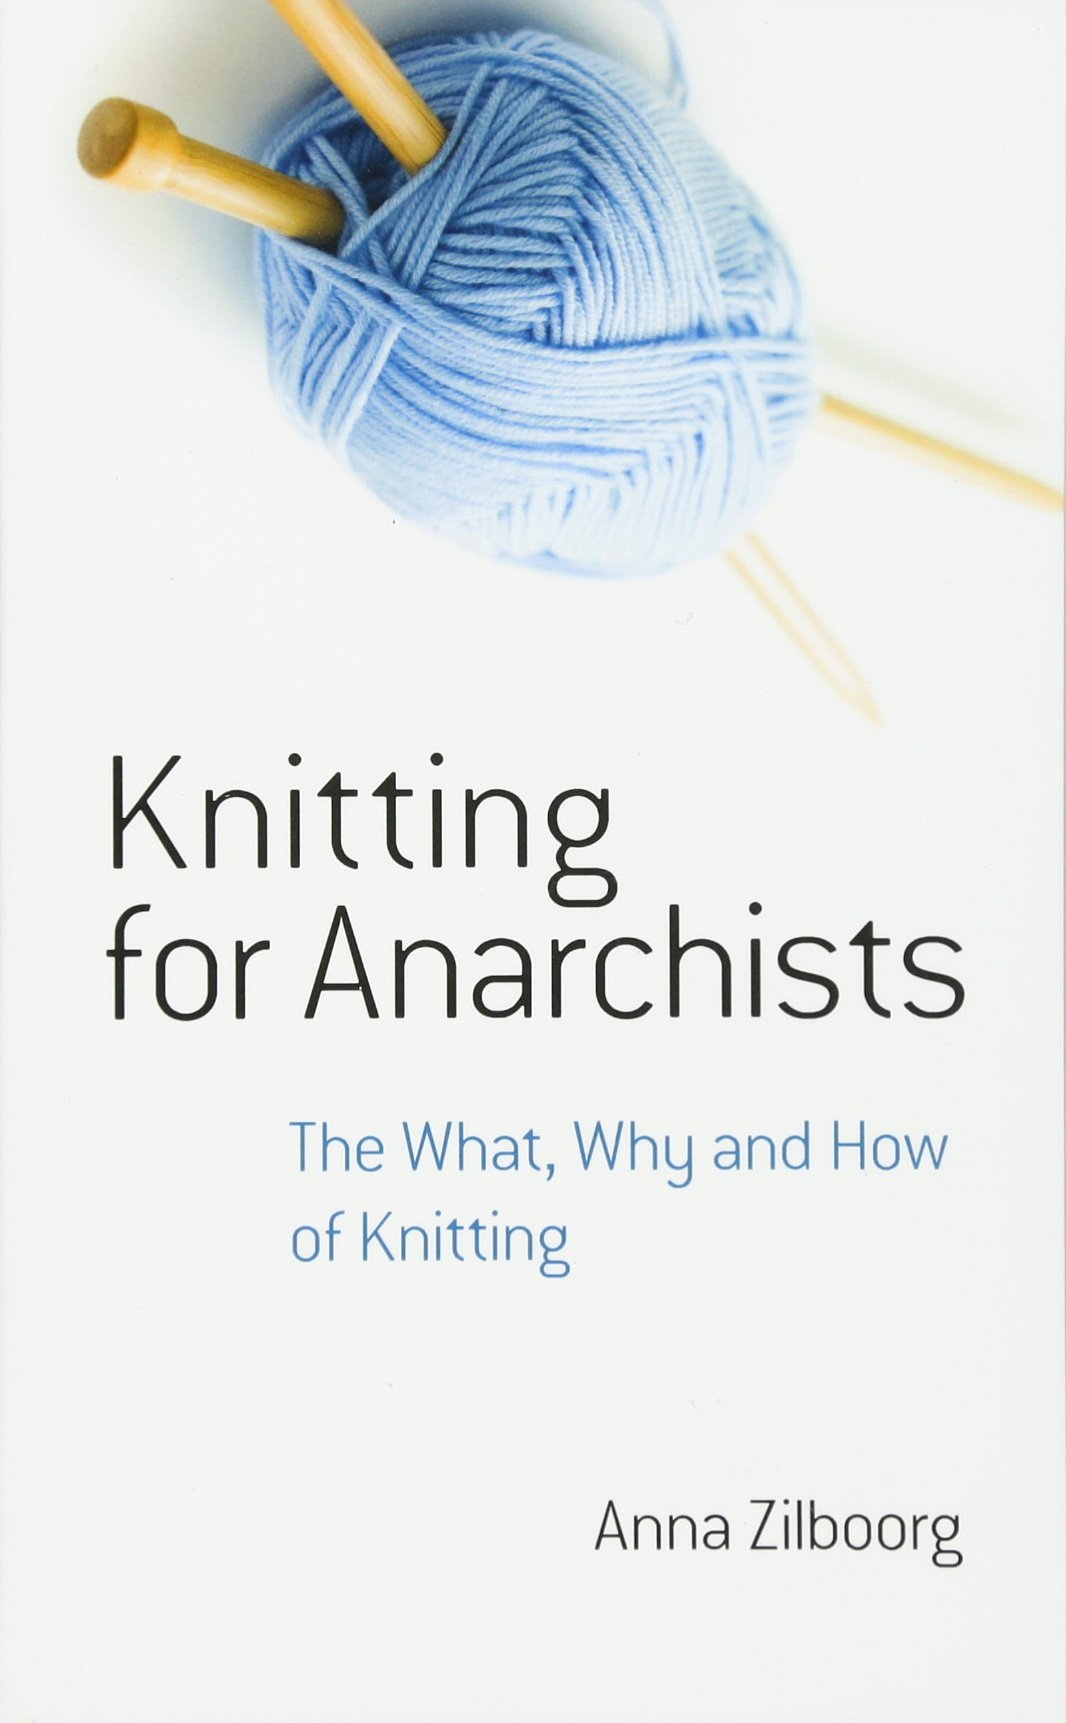 Download Knitting for Anarchists: The What, Why and How of Knitting (Dover Knitting, Crochet, Tatting, Lace) ebook